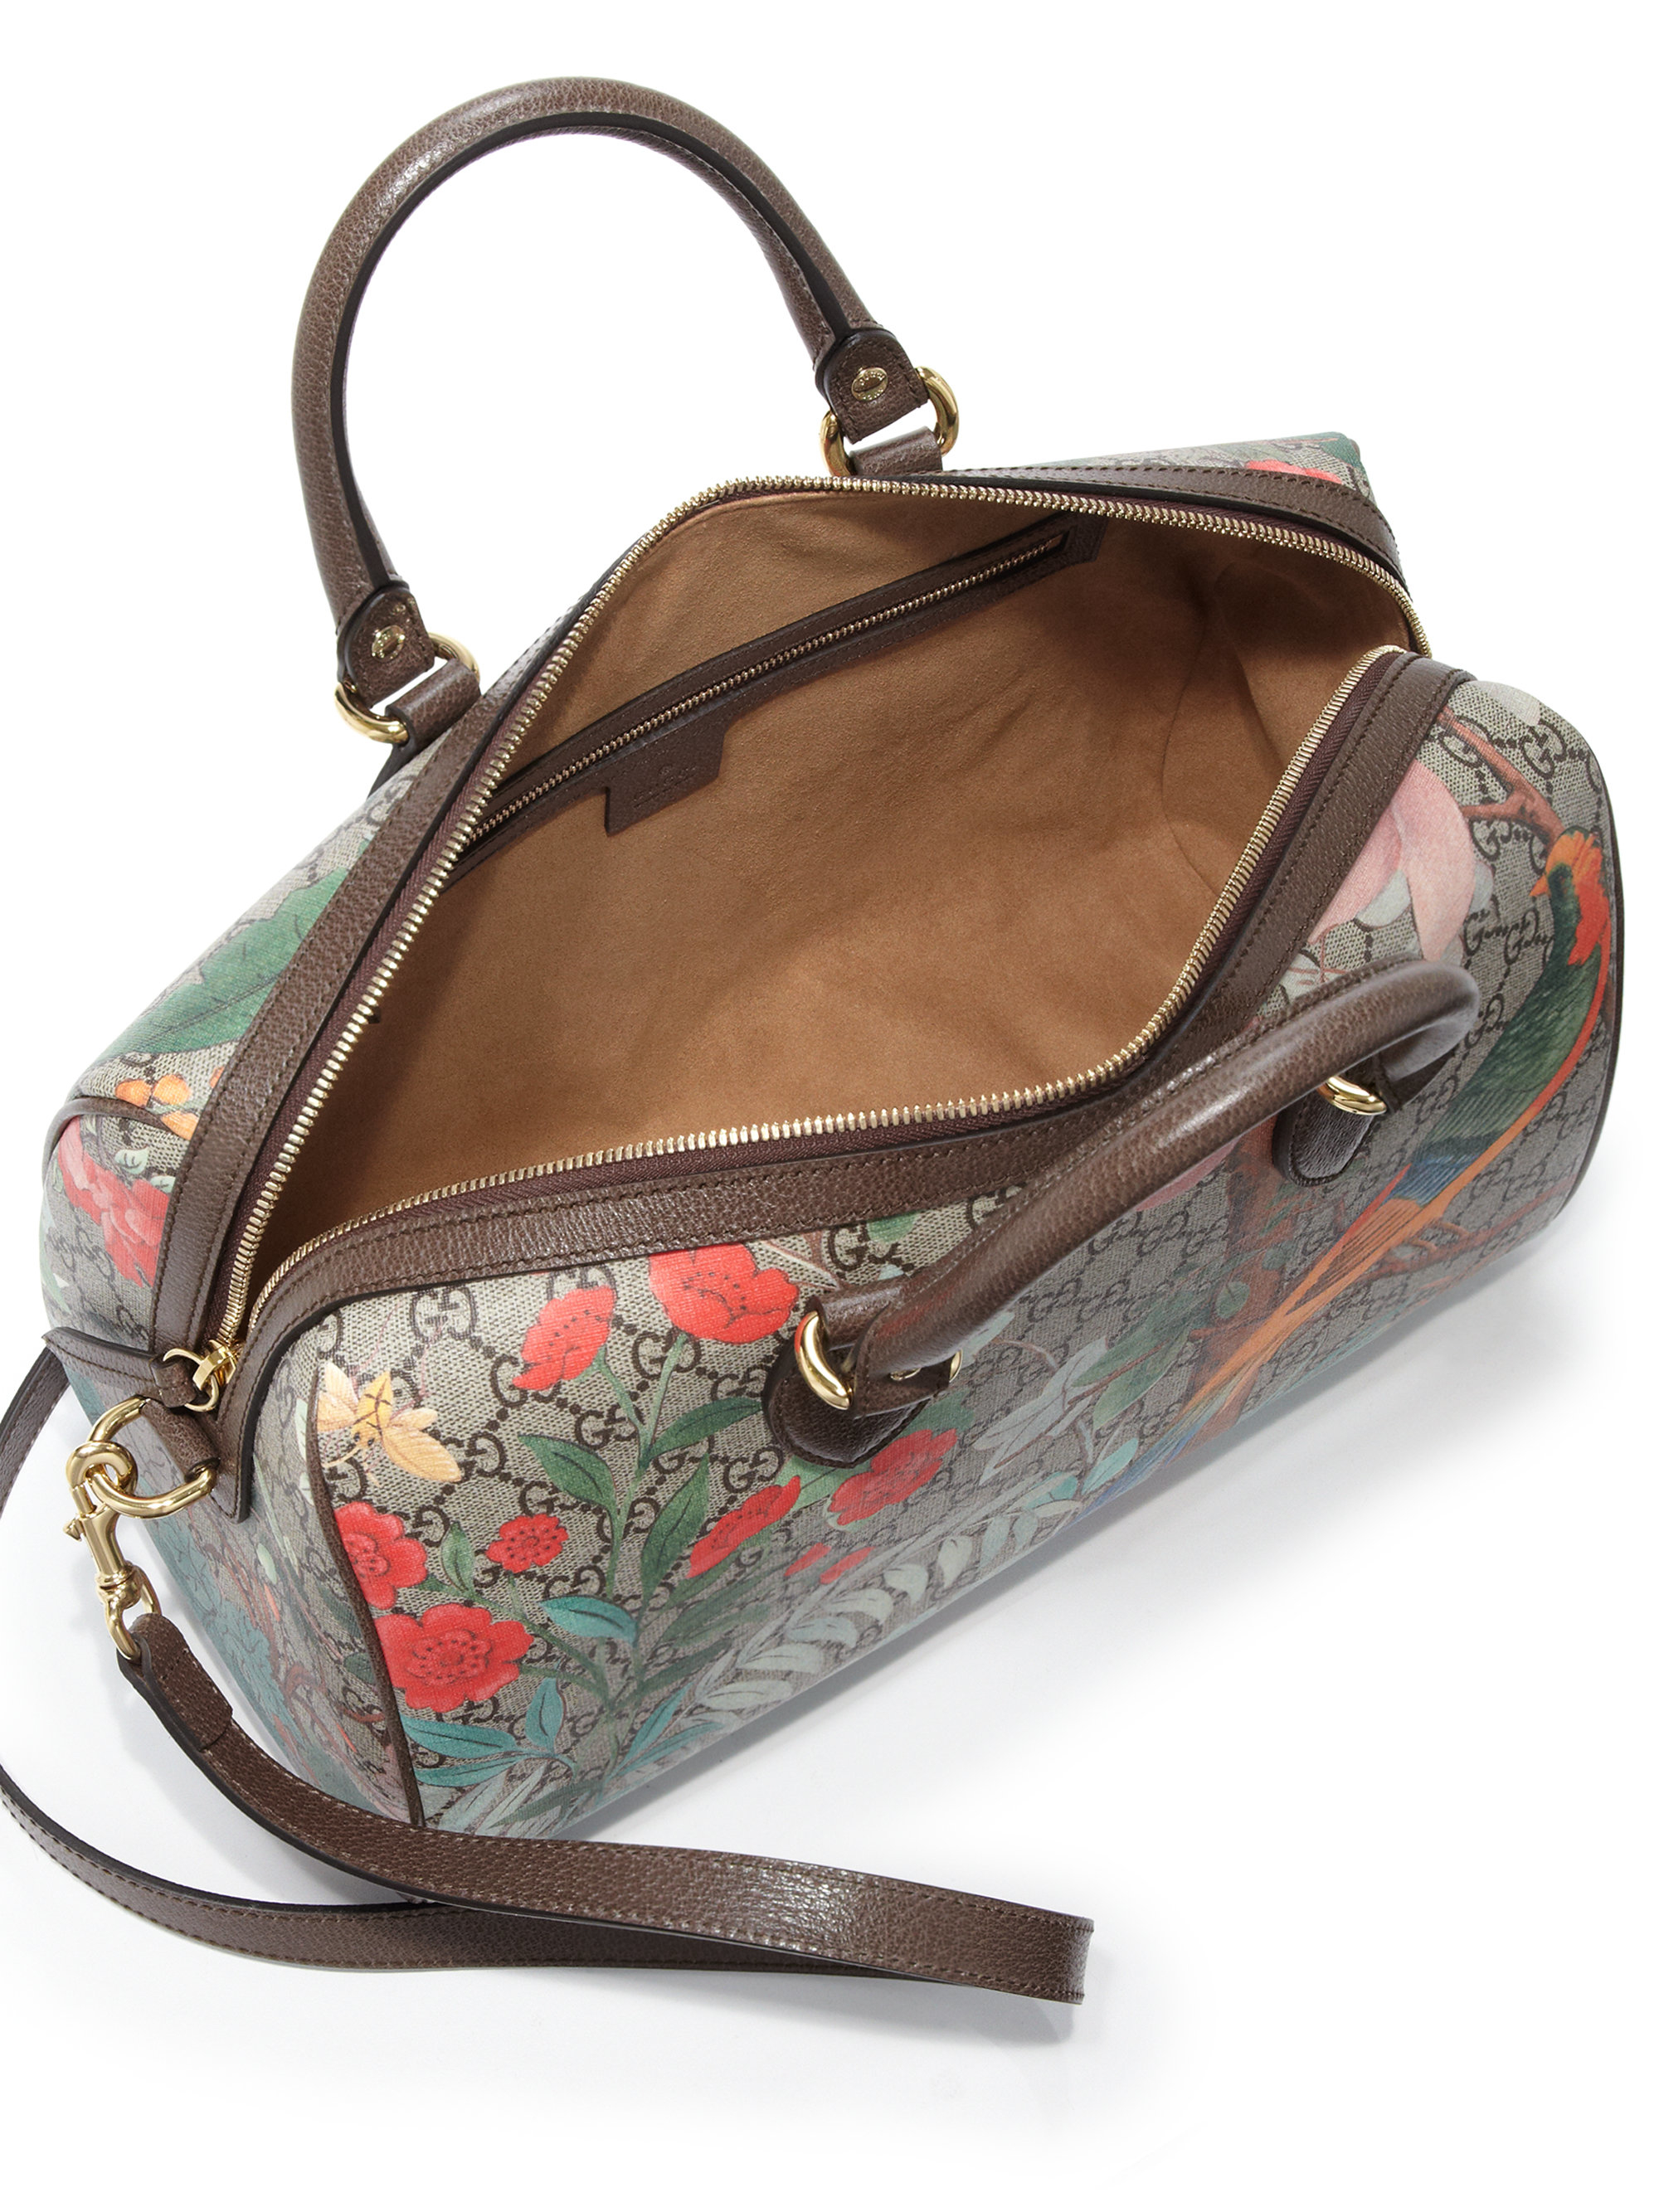 b9bed90cace Lyst - Gucci Tian Gg Supreme Top-handle Boston Bag